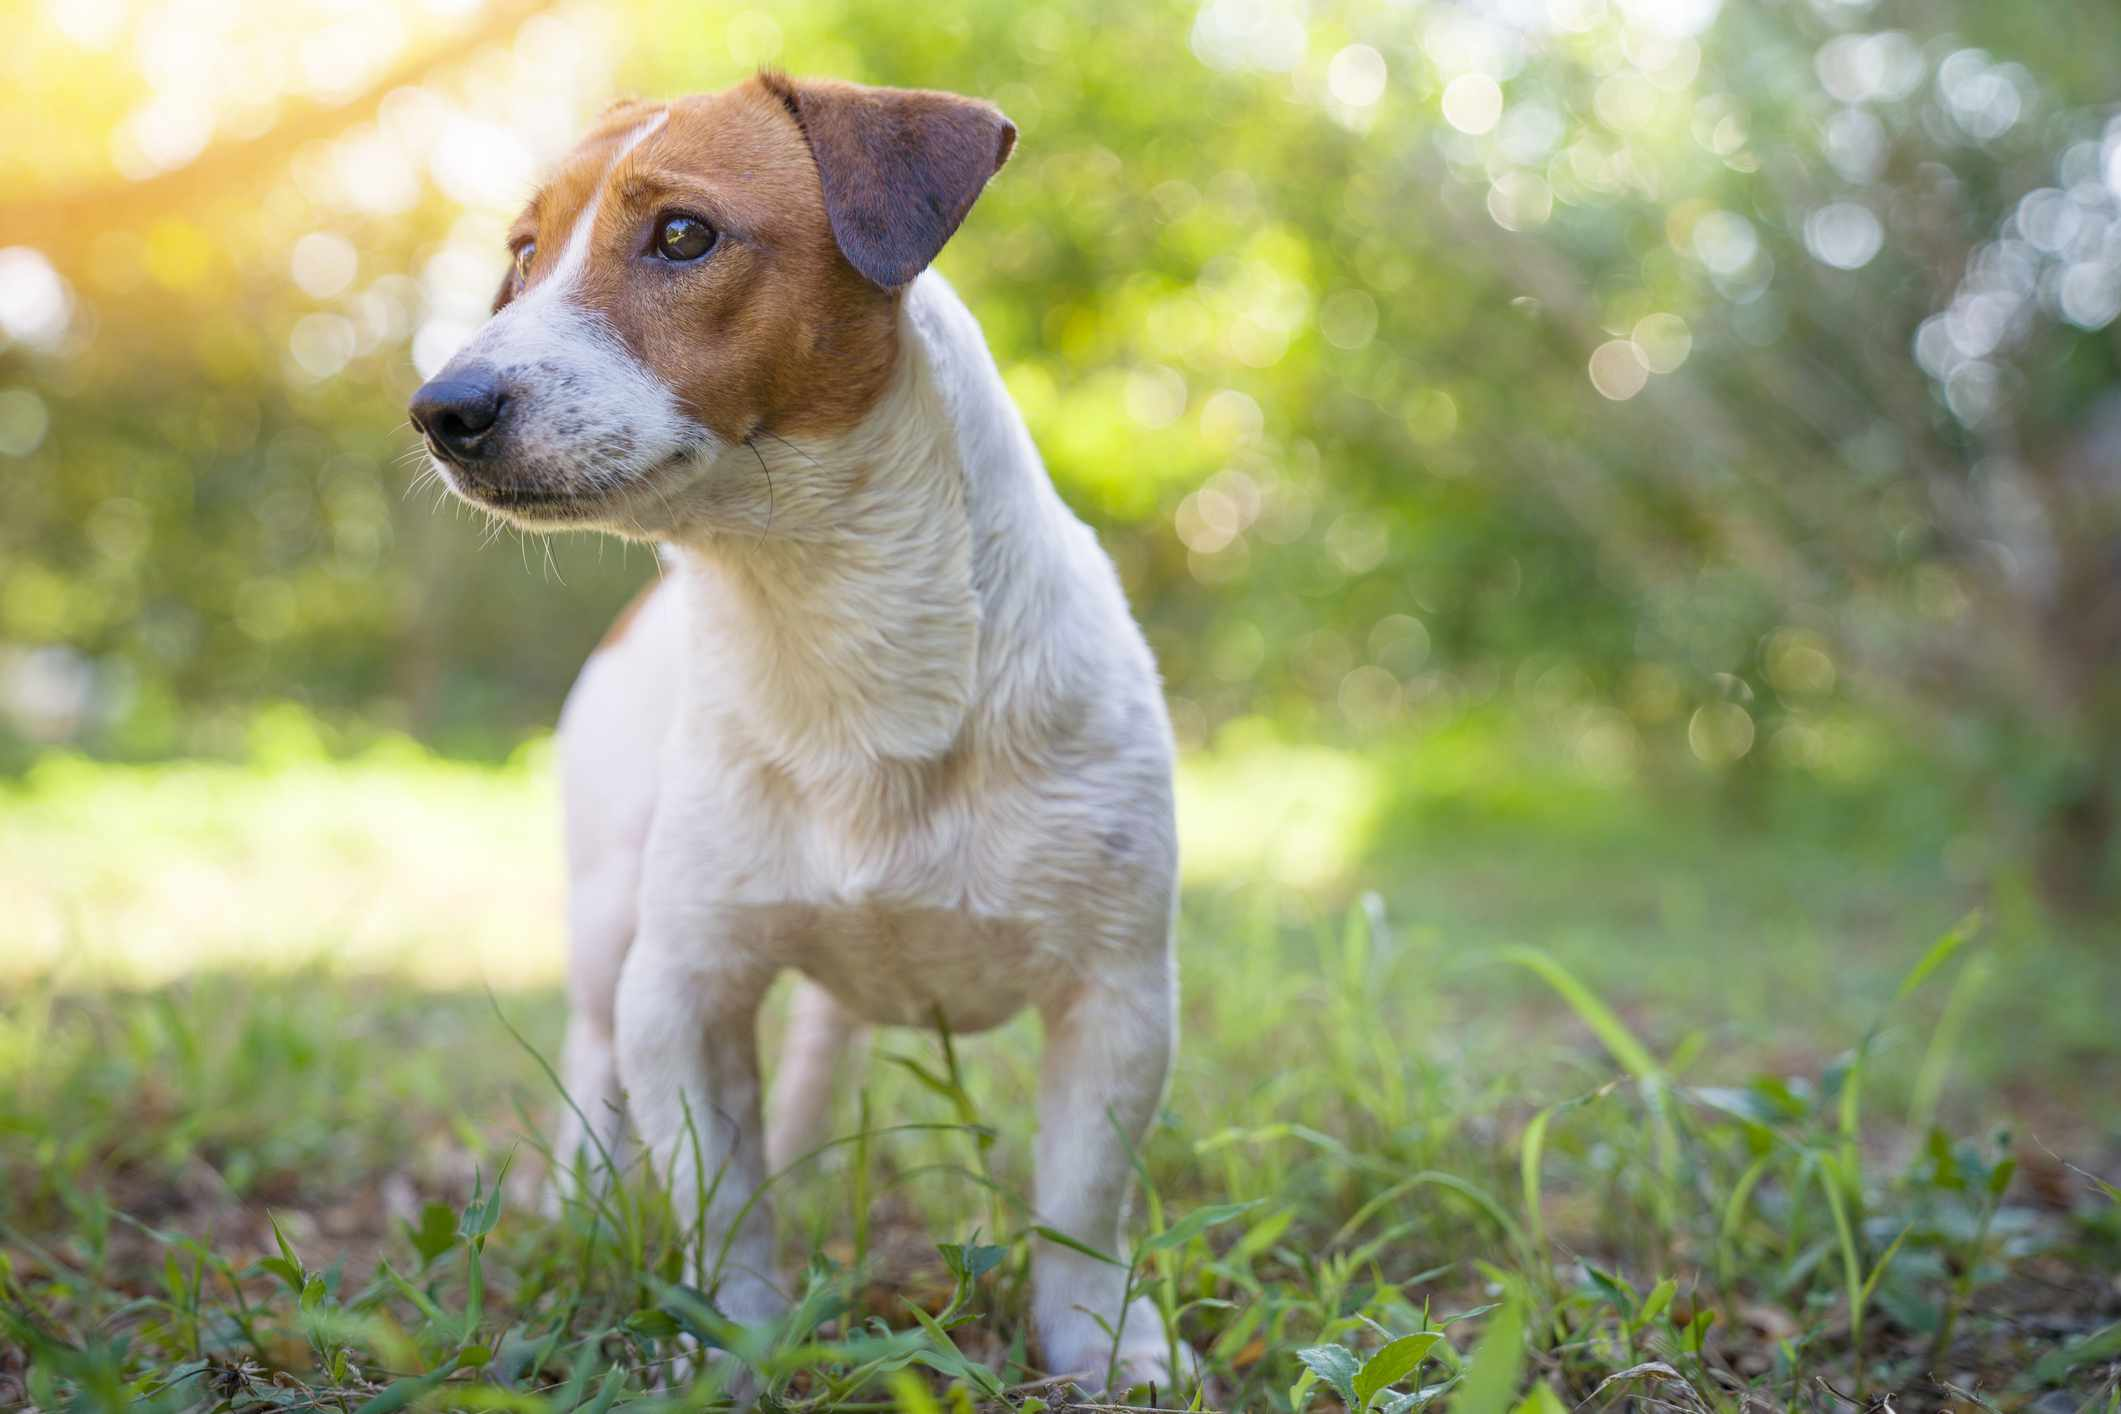 Jack Russell terrier standing in the grass